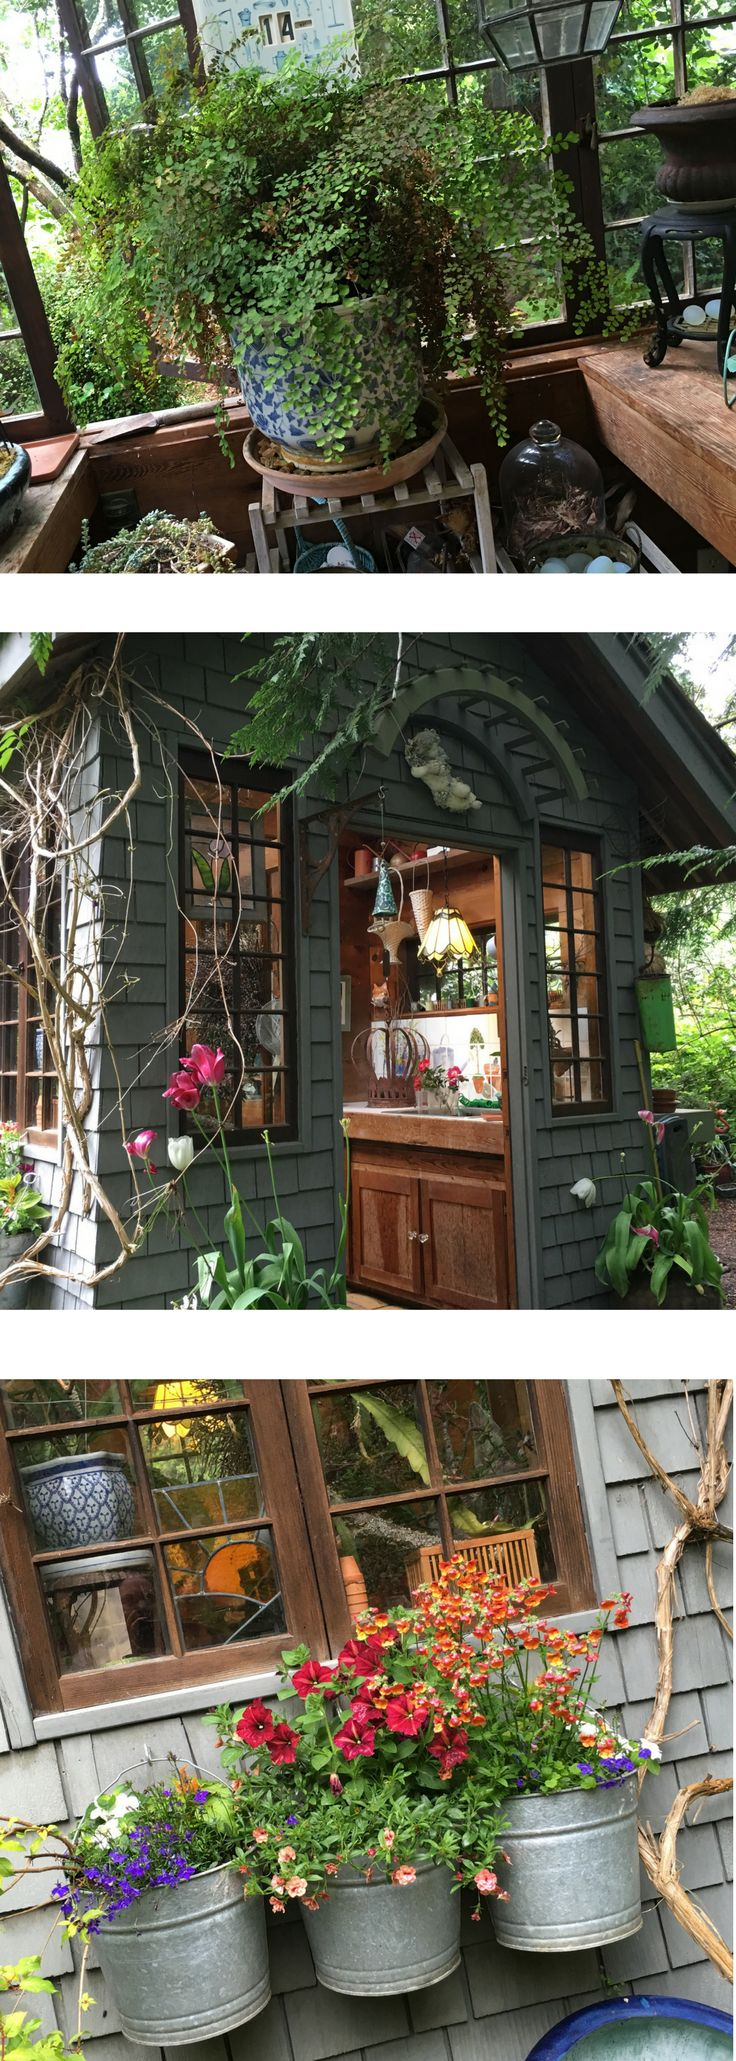 Rustic Garden Potting Shed - Take a Tour